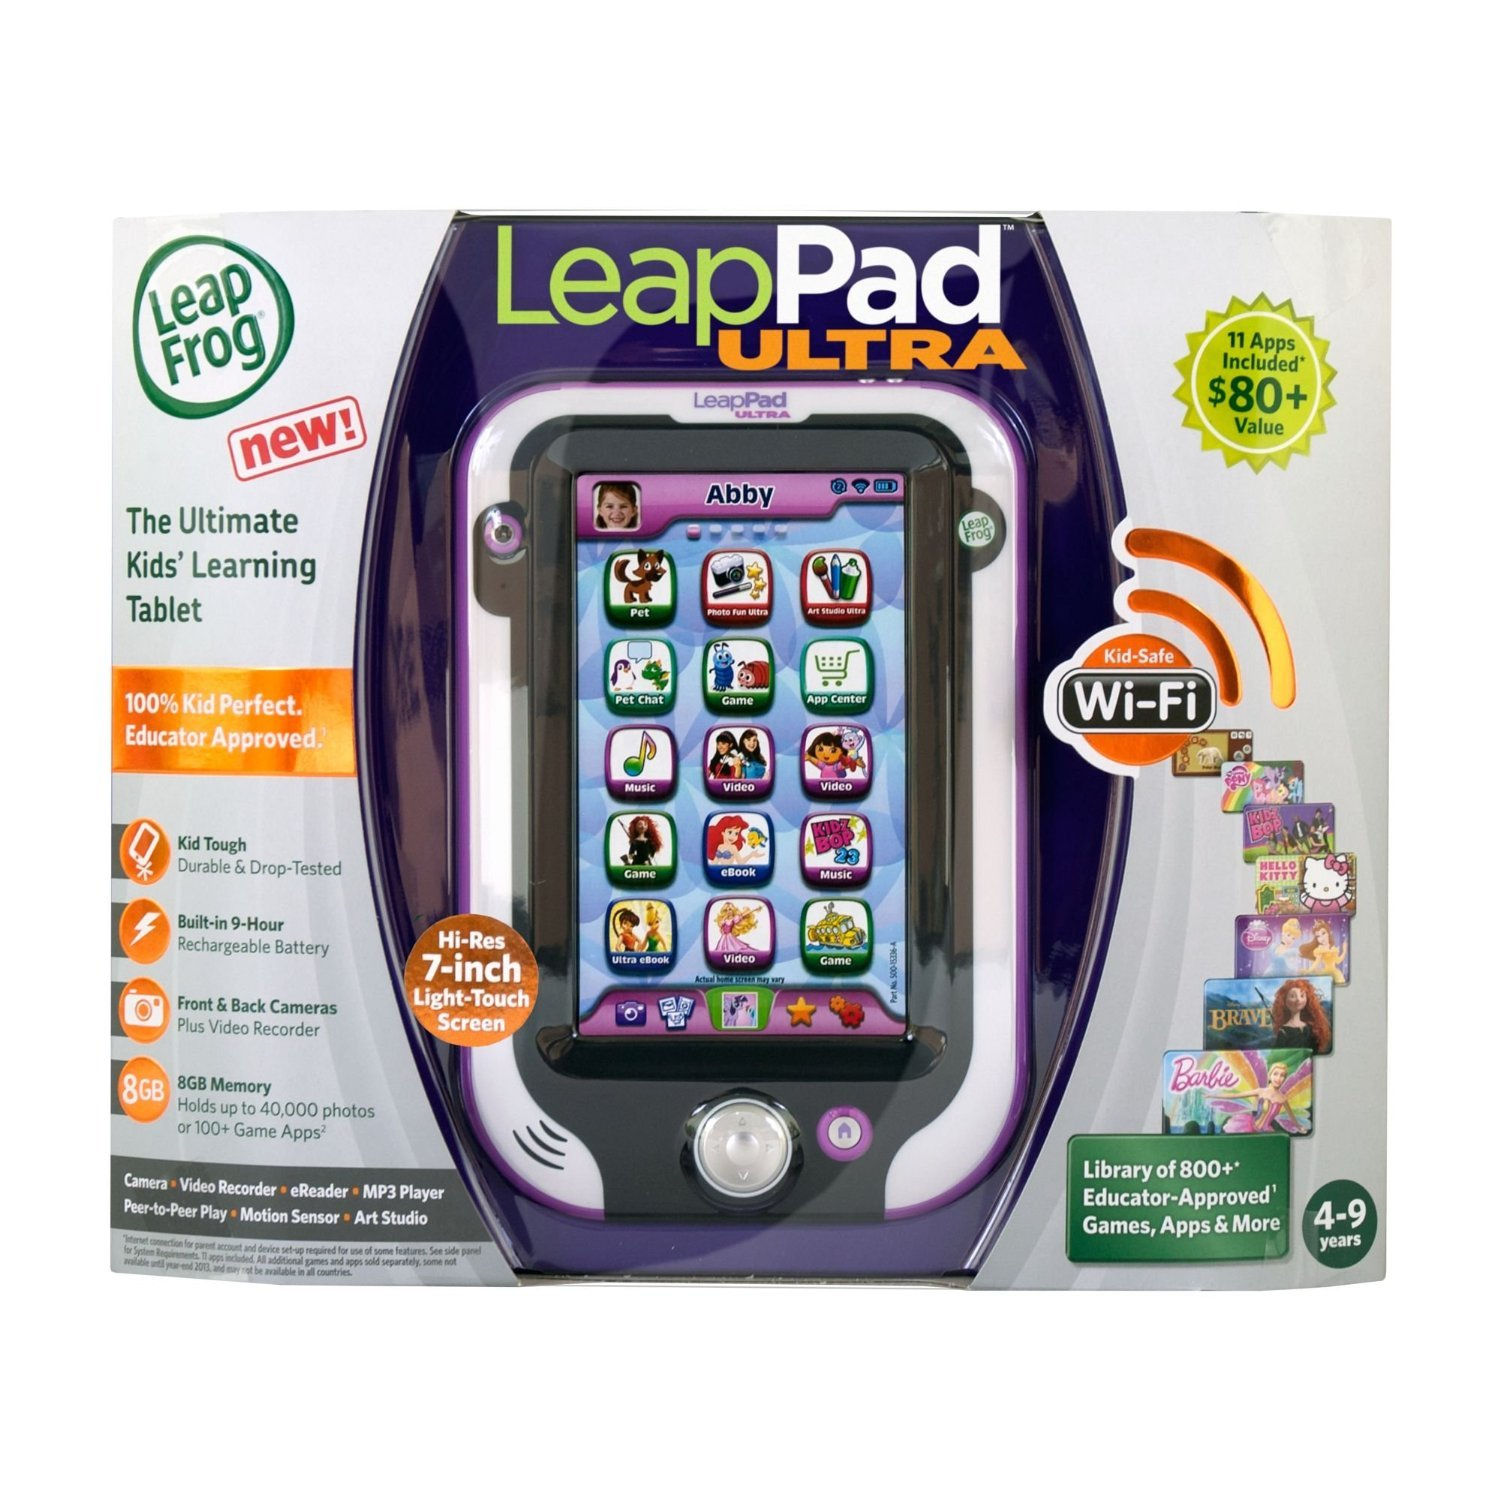 Amazon leapfrog leappad ultra xdi kids learning tablet amazon leapfrog leappad ultra xdi kids learning tablet styles may vary toys games fandeluxe Choice Image